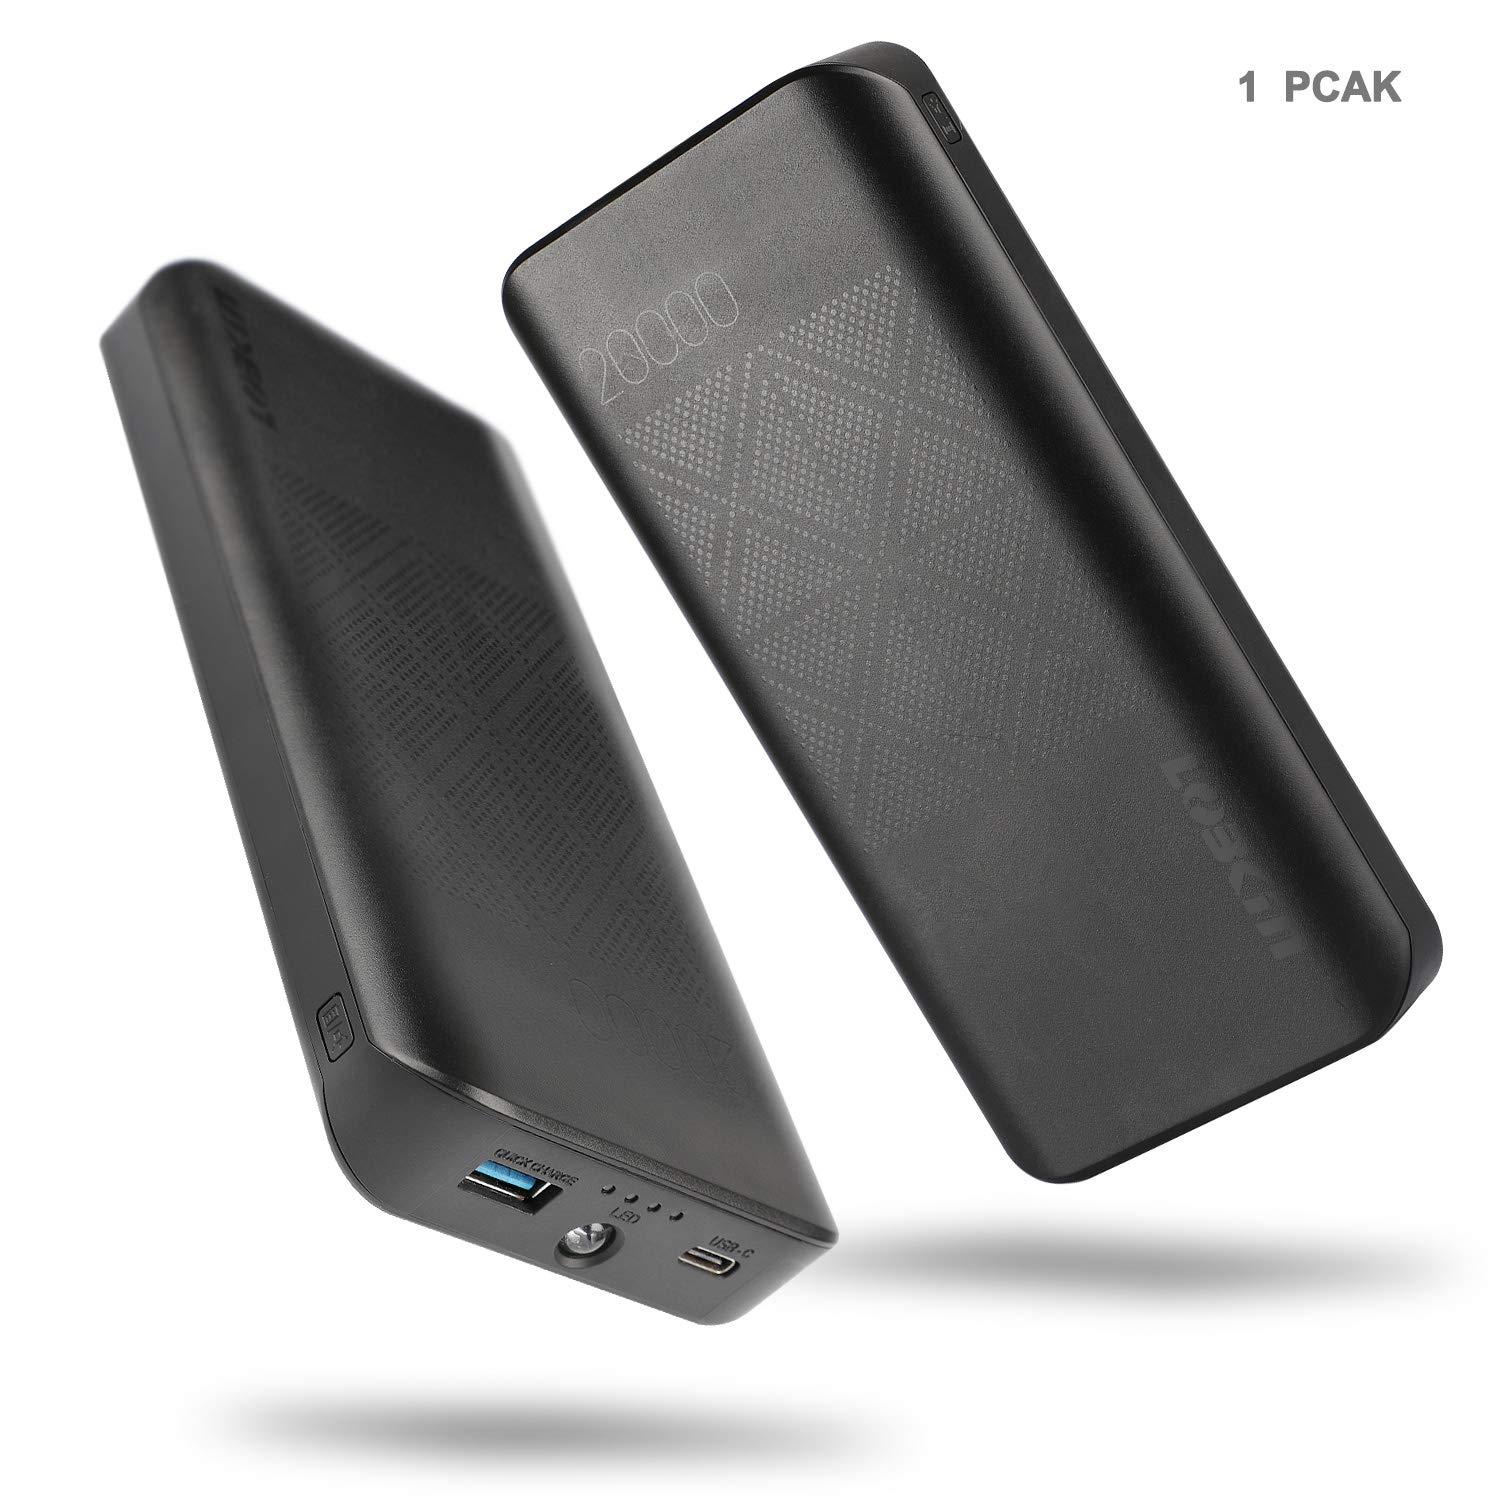 LOBKIN Powerbank 20000mAh 2 Porte 18W PD3.0 QC3.0, Caricabatterie Portatile con Ingresso Fulmine + Type C Power Pack, per iPhone X/ 8/7/ 6s, iPad, Samsung S9/ S9+, Tablets